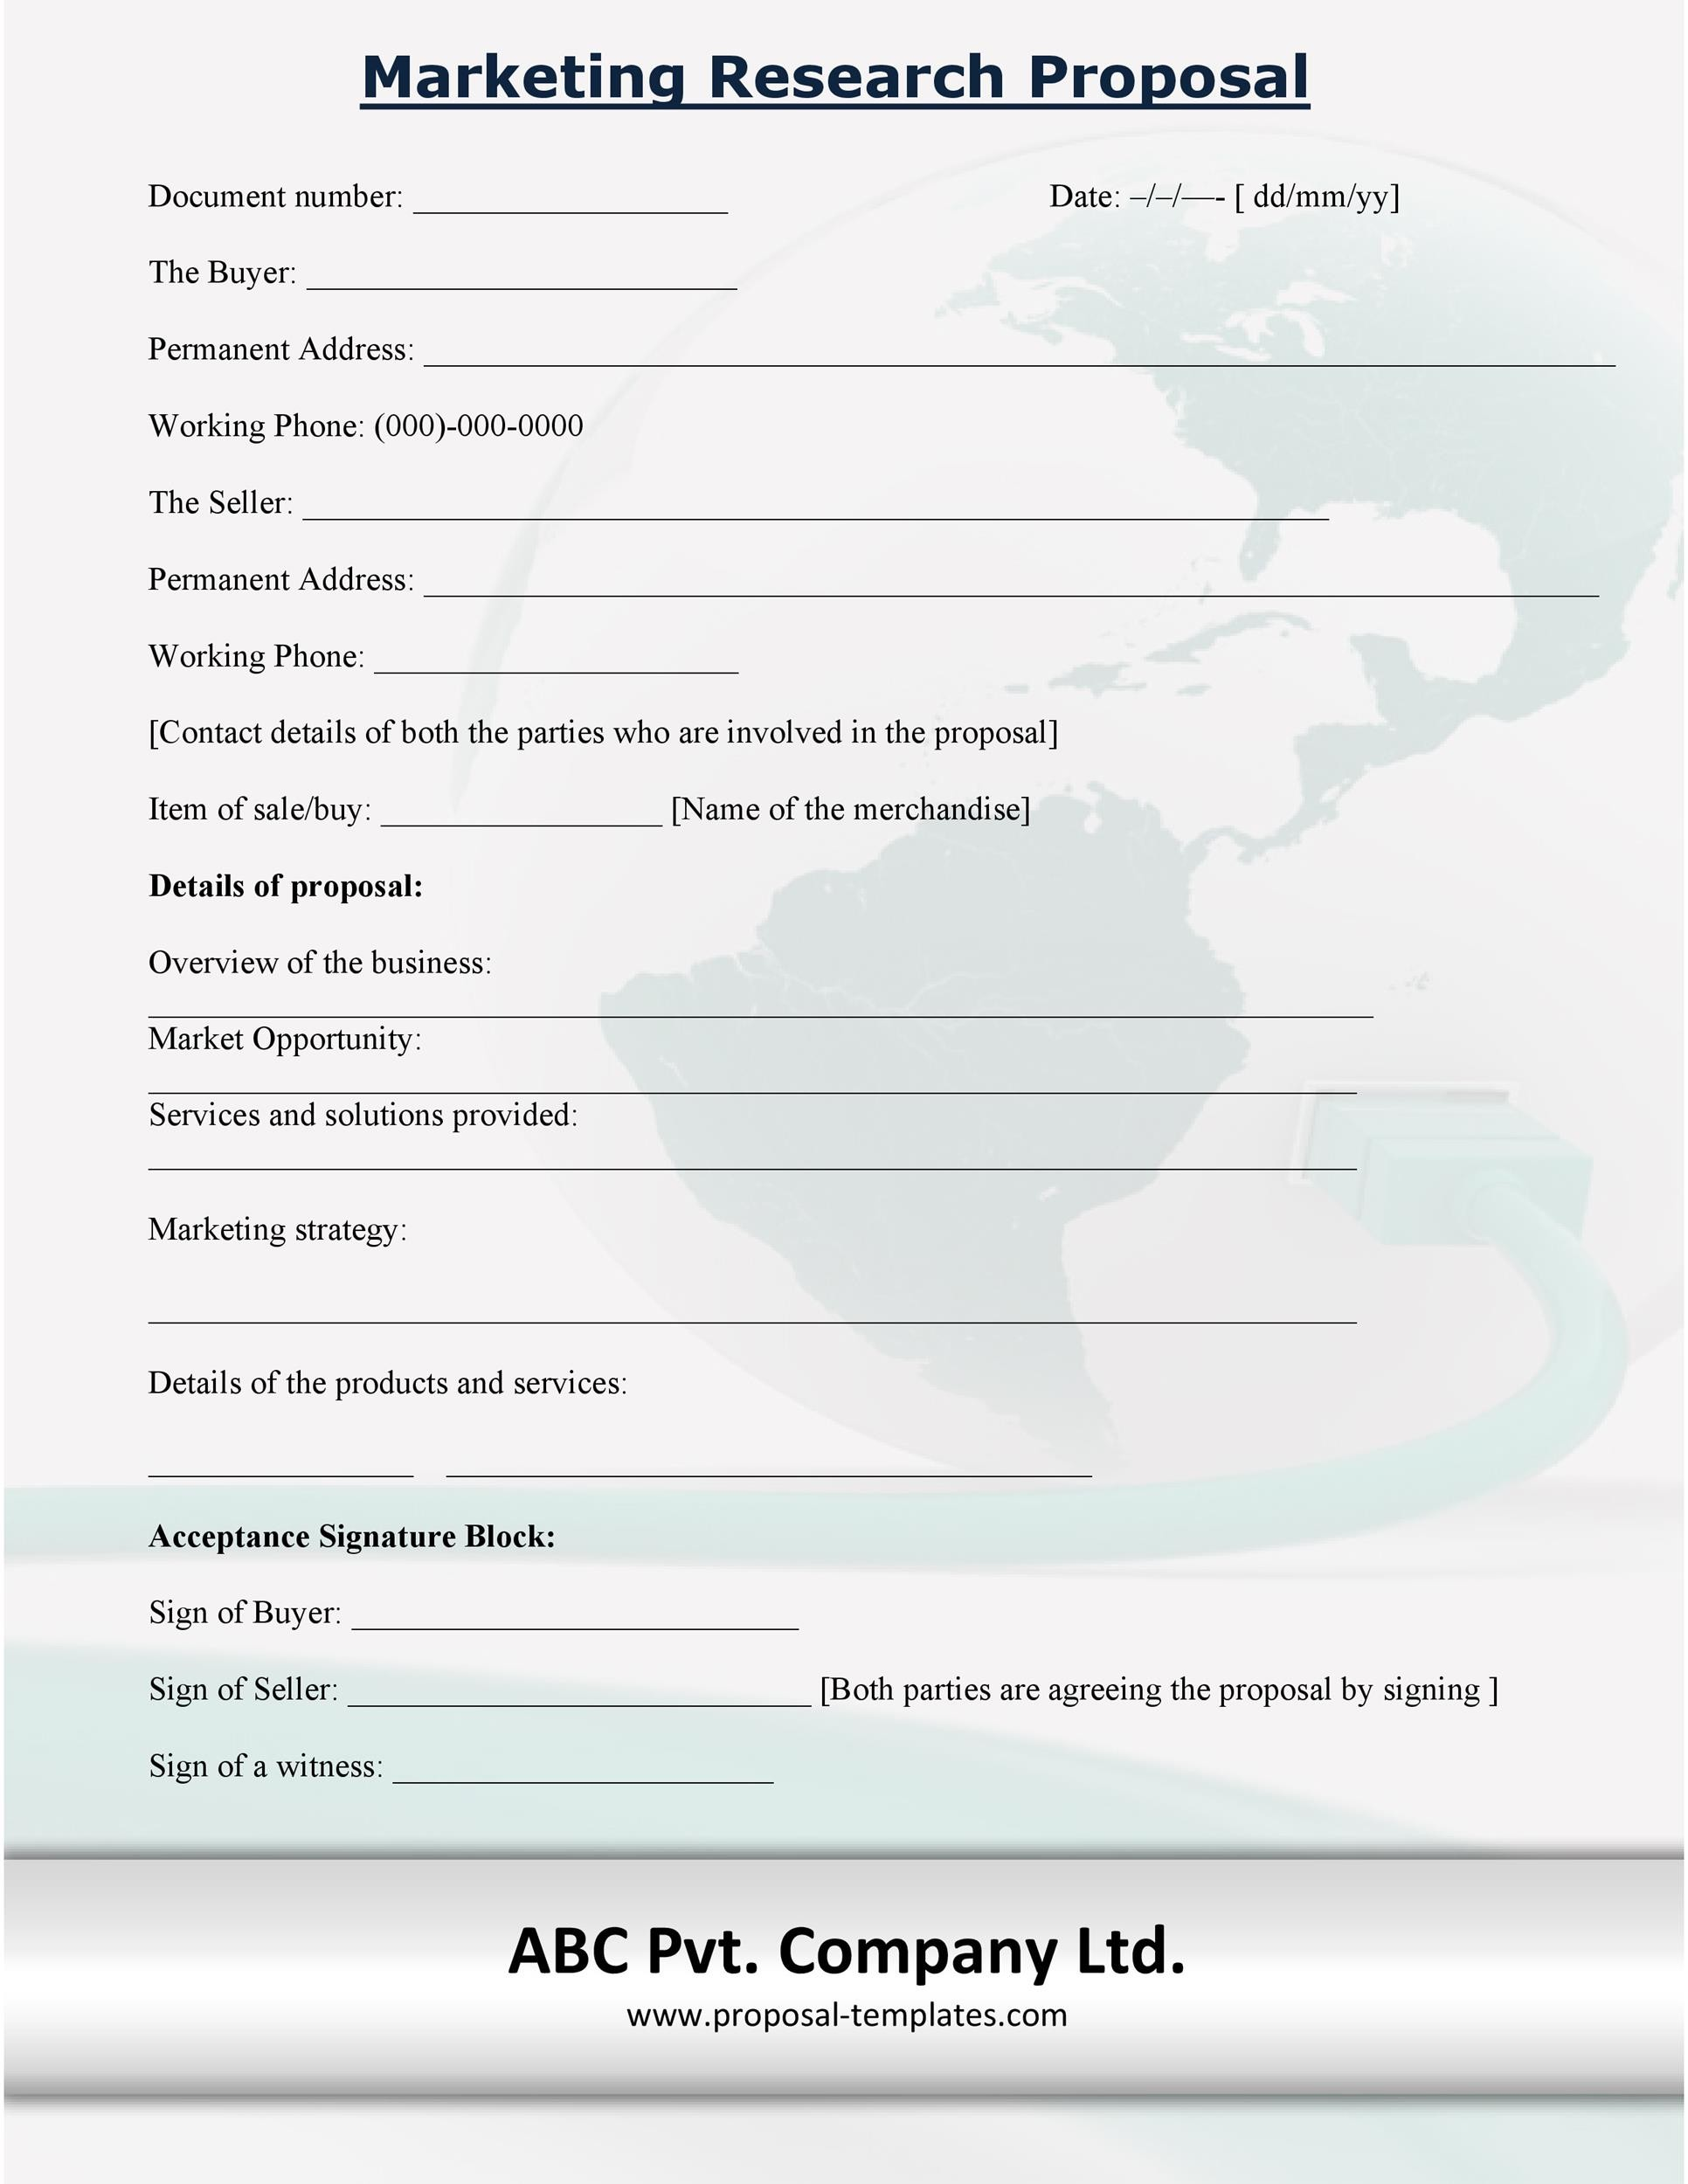 Free Research Proposal Template 16